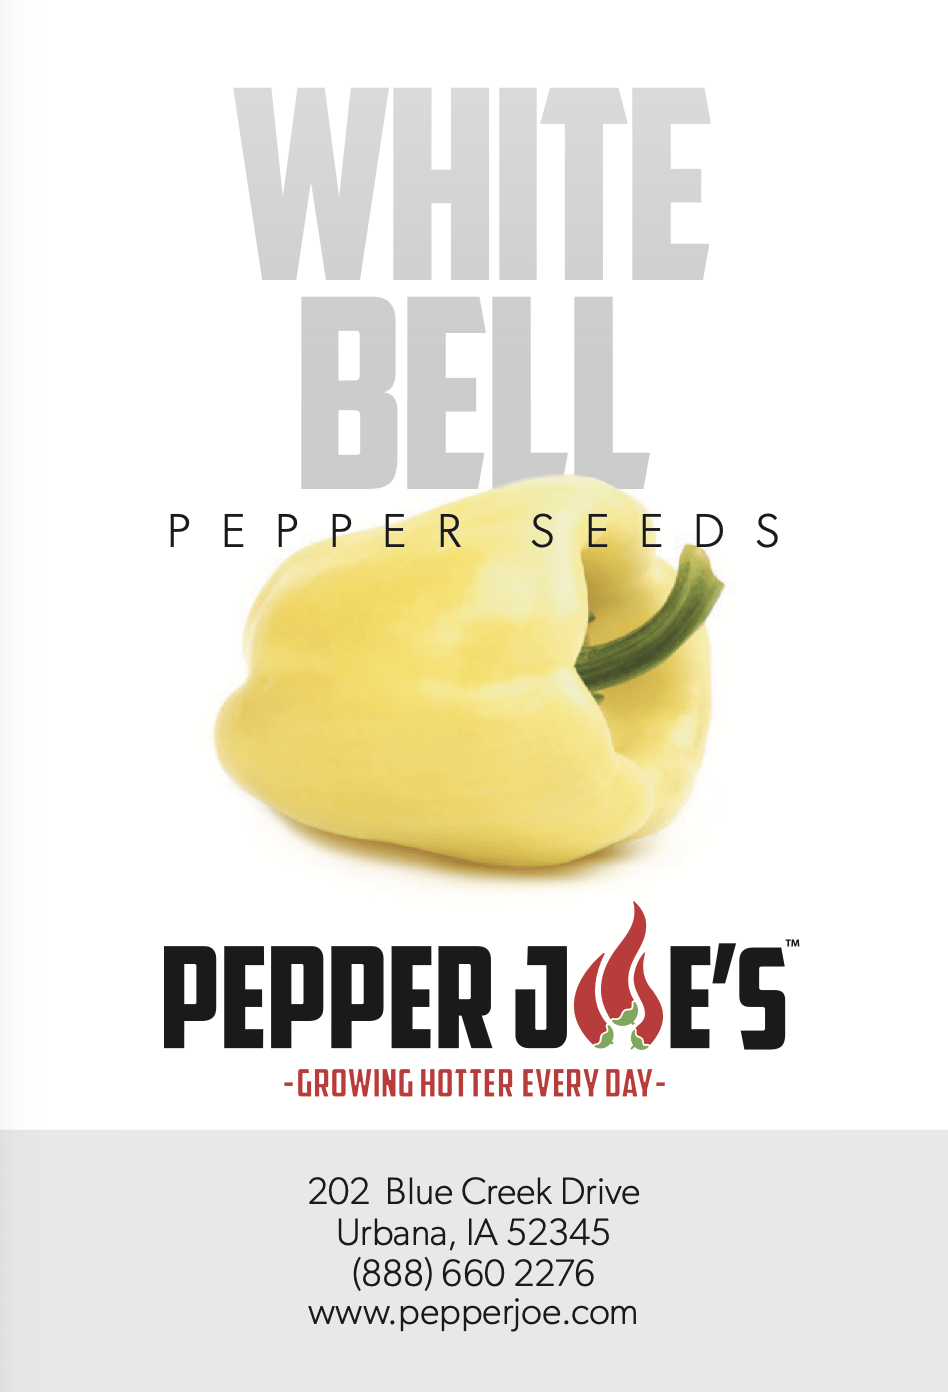 white peppers also known as white sweet pepper